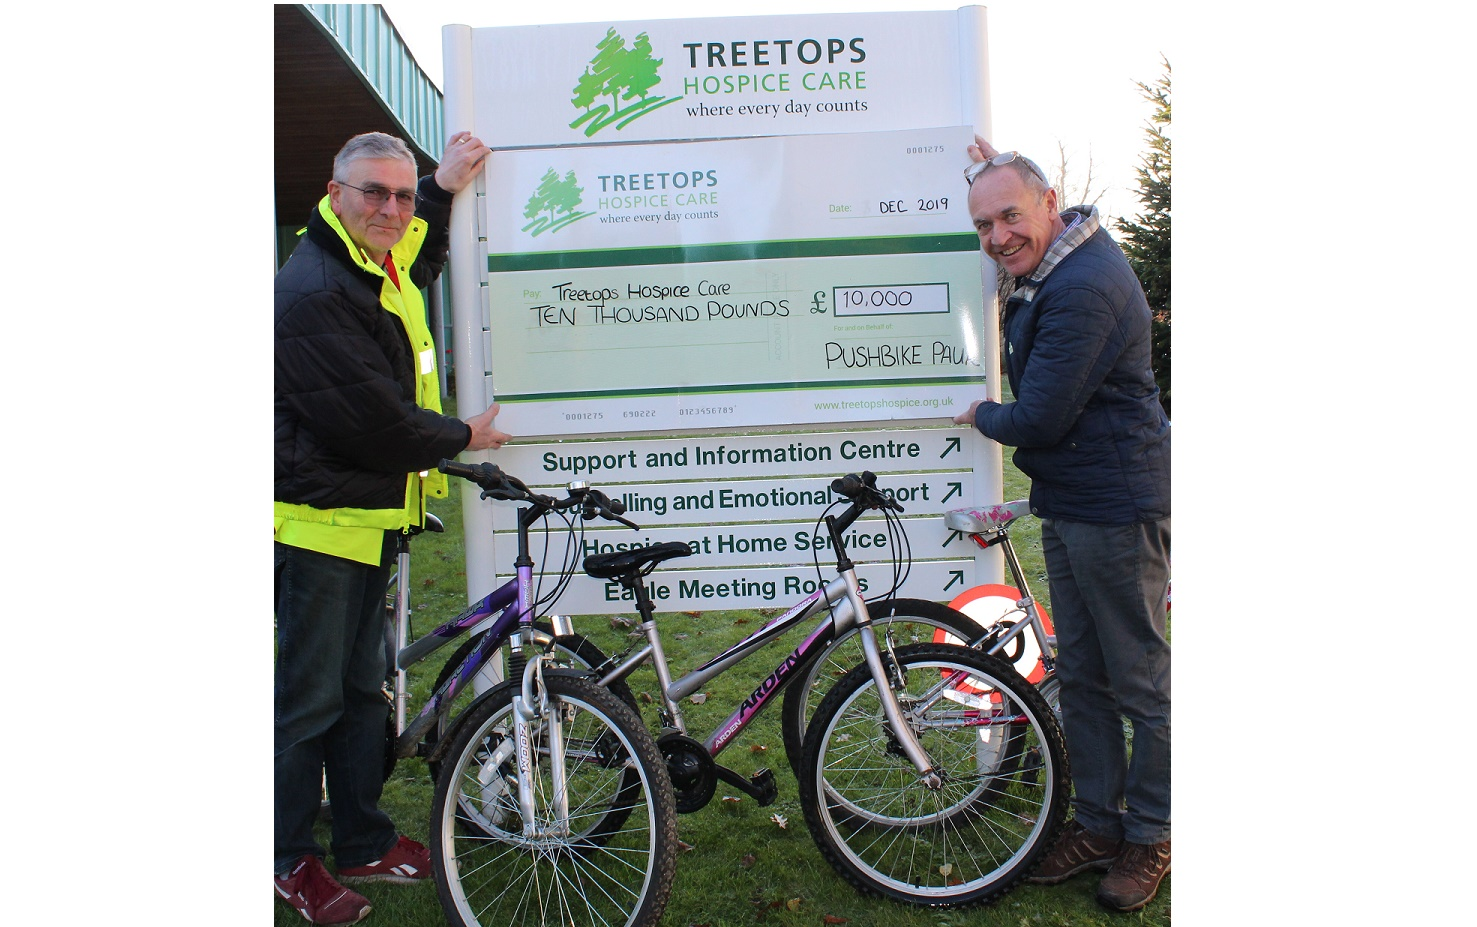 Volunteer raises £10k for hospice with bike recycling scheme